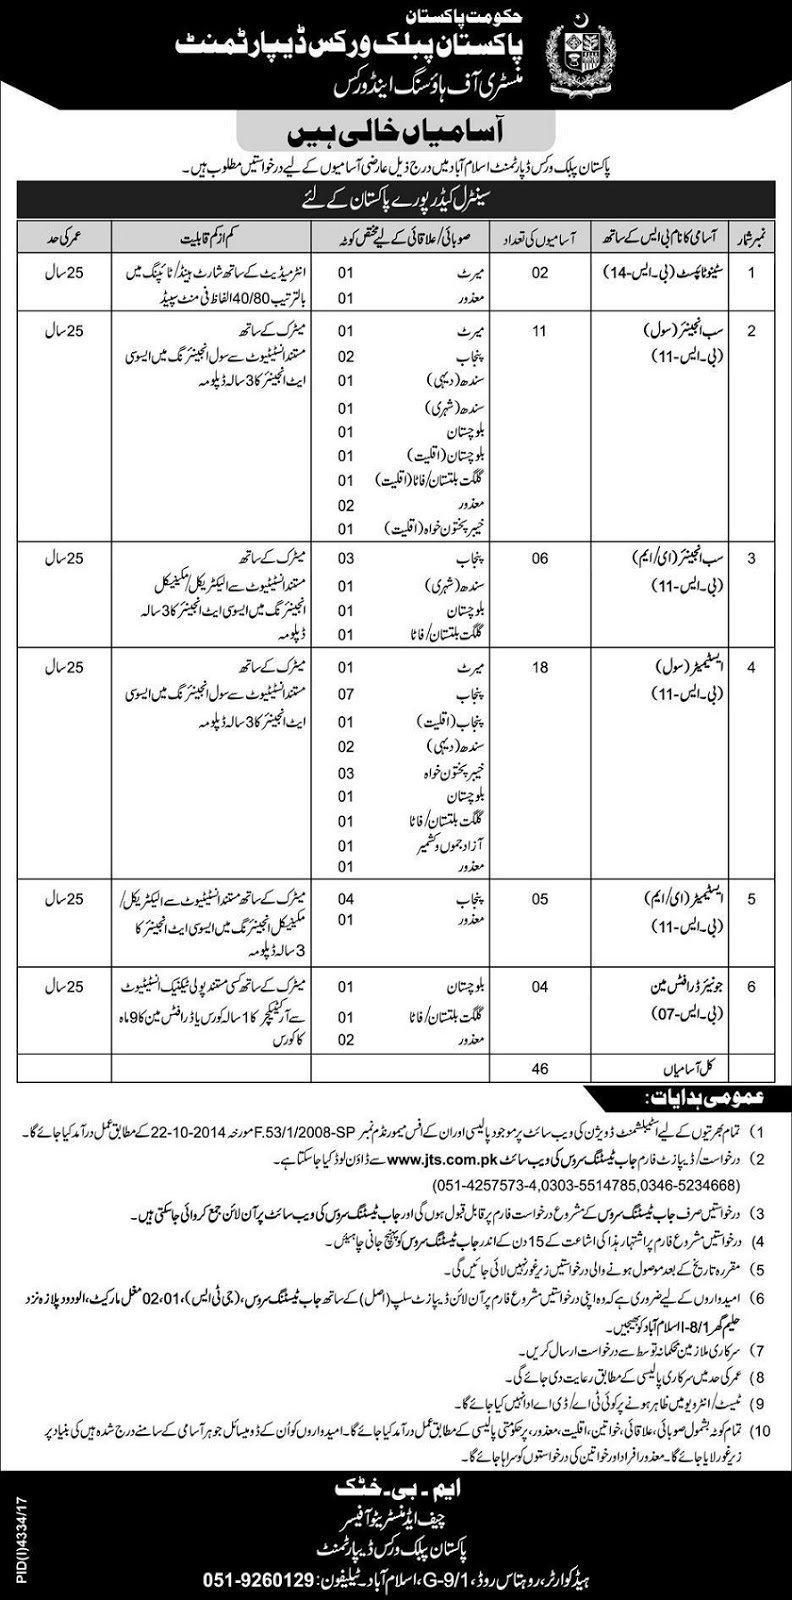 DAE Jobs 2018, Latest Jobs in Pakistan, Jobs for DAE Mechanical, Fresh DAE Jobs, Jobs in Punjab, Jobs in Lahore, Jobs in Sindh, Jobs in Karachi, Jobs in Islamabad, Jobs in Quetta, Jobs in Balochistan, Jobs in KPK, Jobs in Peshawar, Jobs in Azad Kashmir, Jobs in Gilgit Baltistan, Jobs in FATA